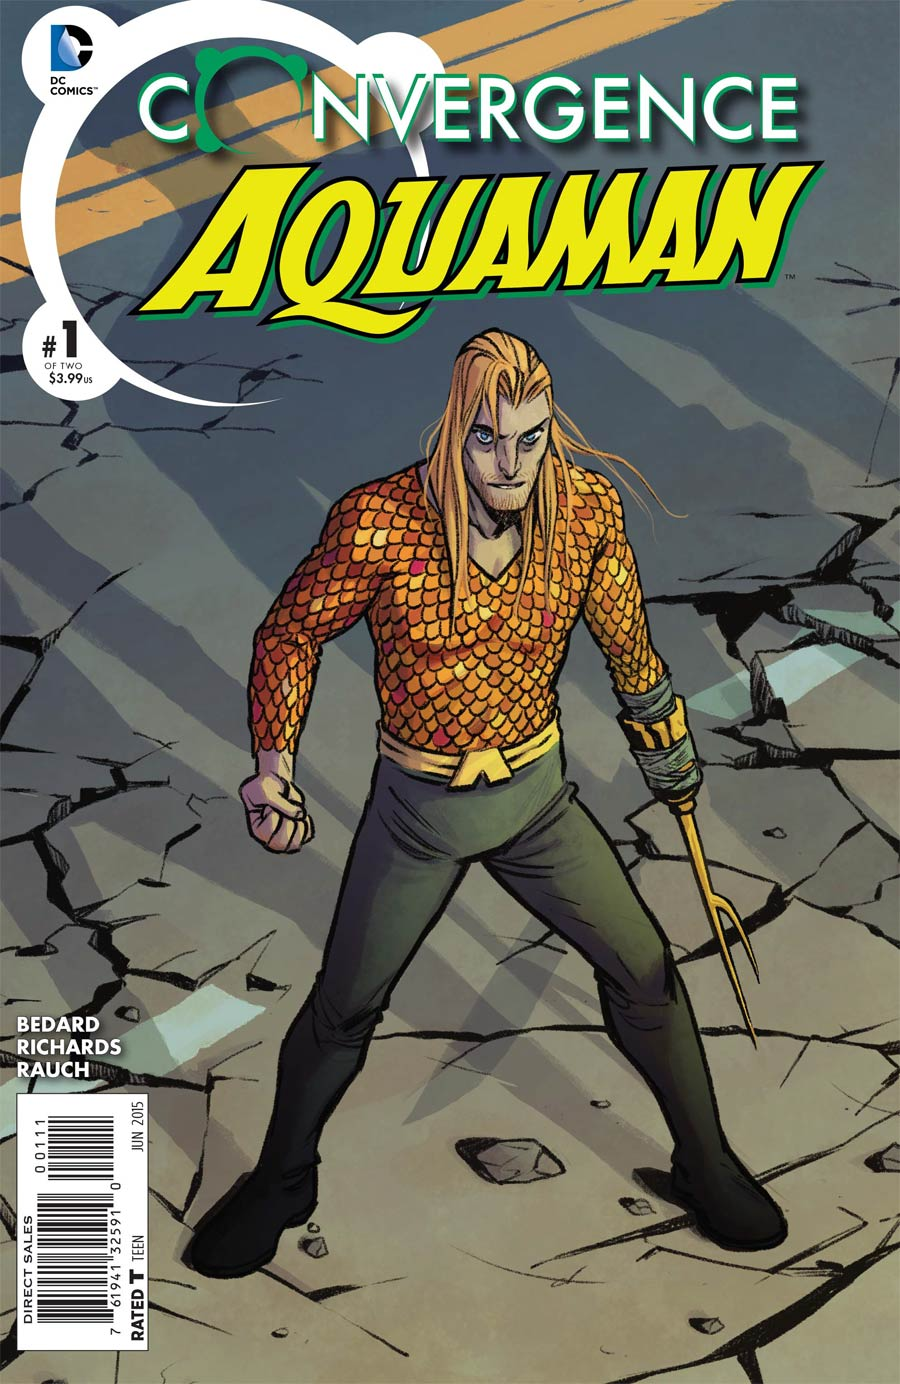 Convergence Aquaman #1 Cover A Regular Becky Cloonan Cover